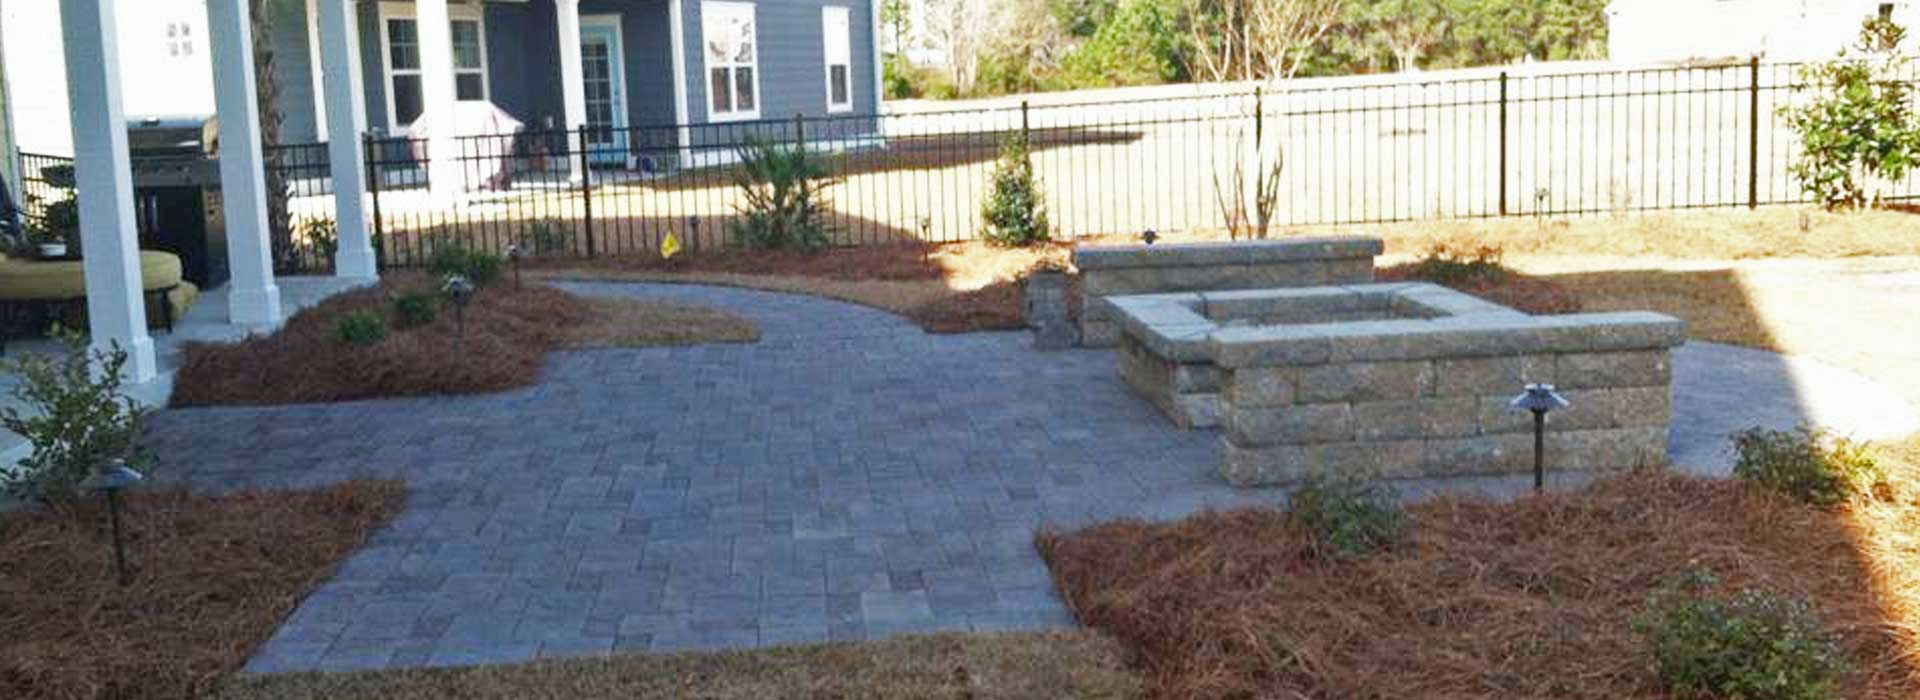 A newly designed and installed fire pit, seating wall, and patio at a home in Atlantic Beach, NC